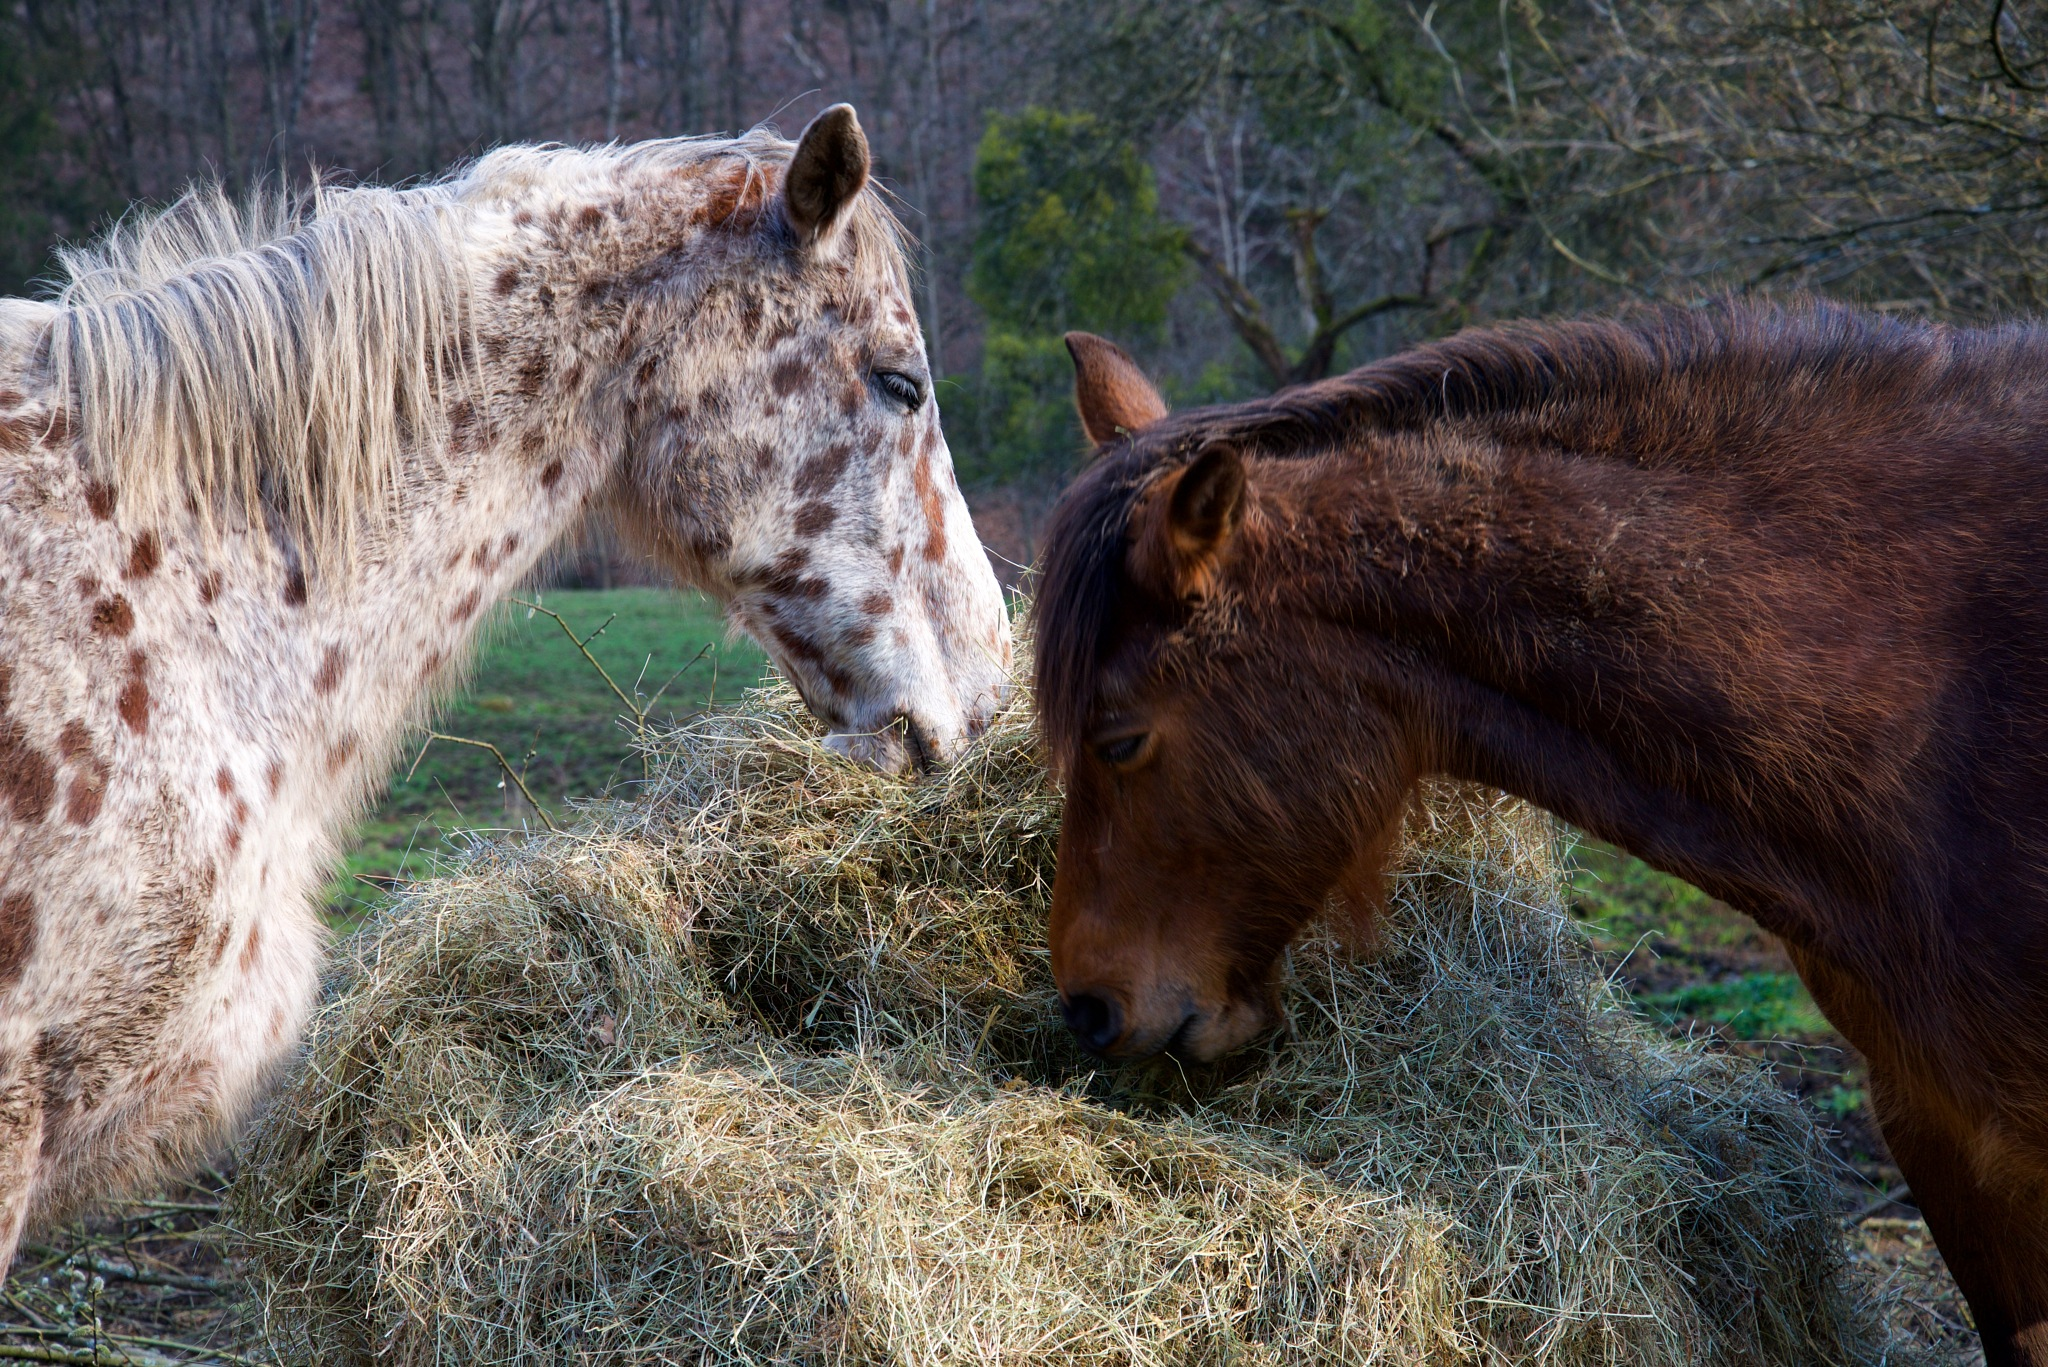 Horses by Wim